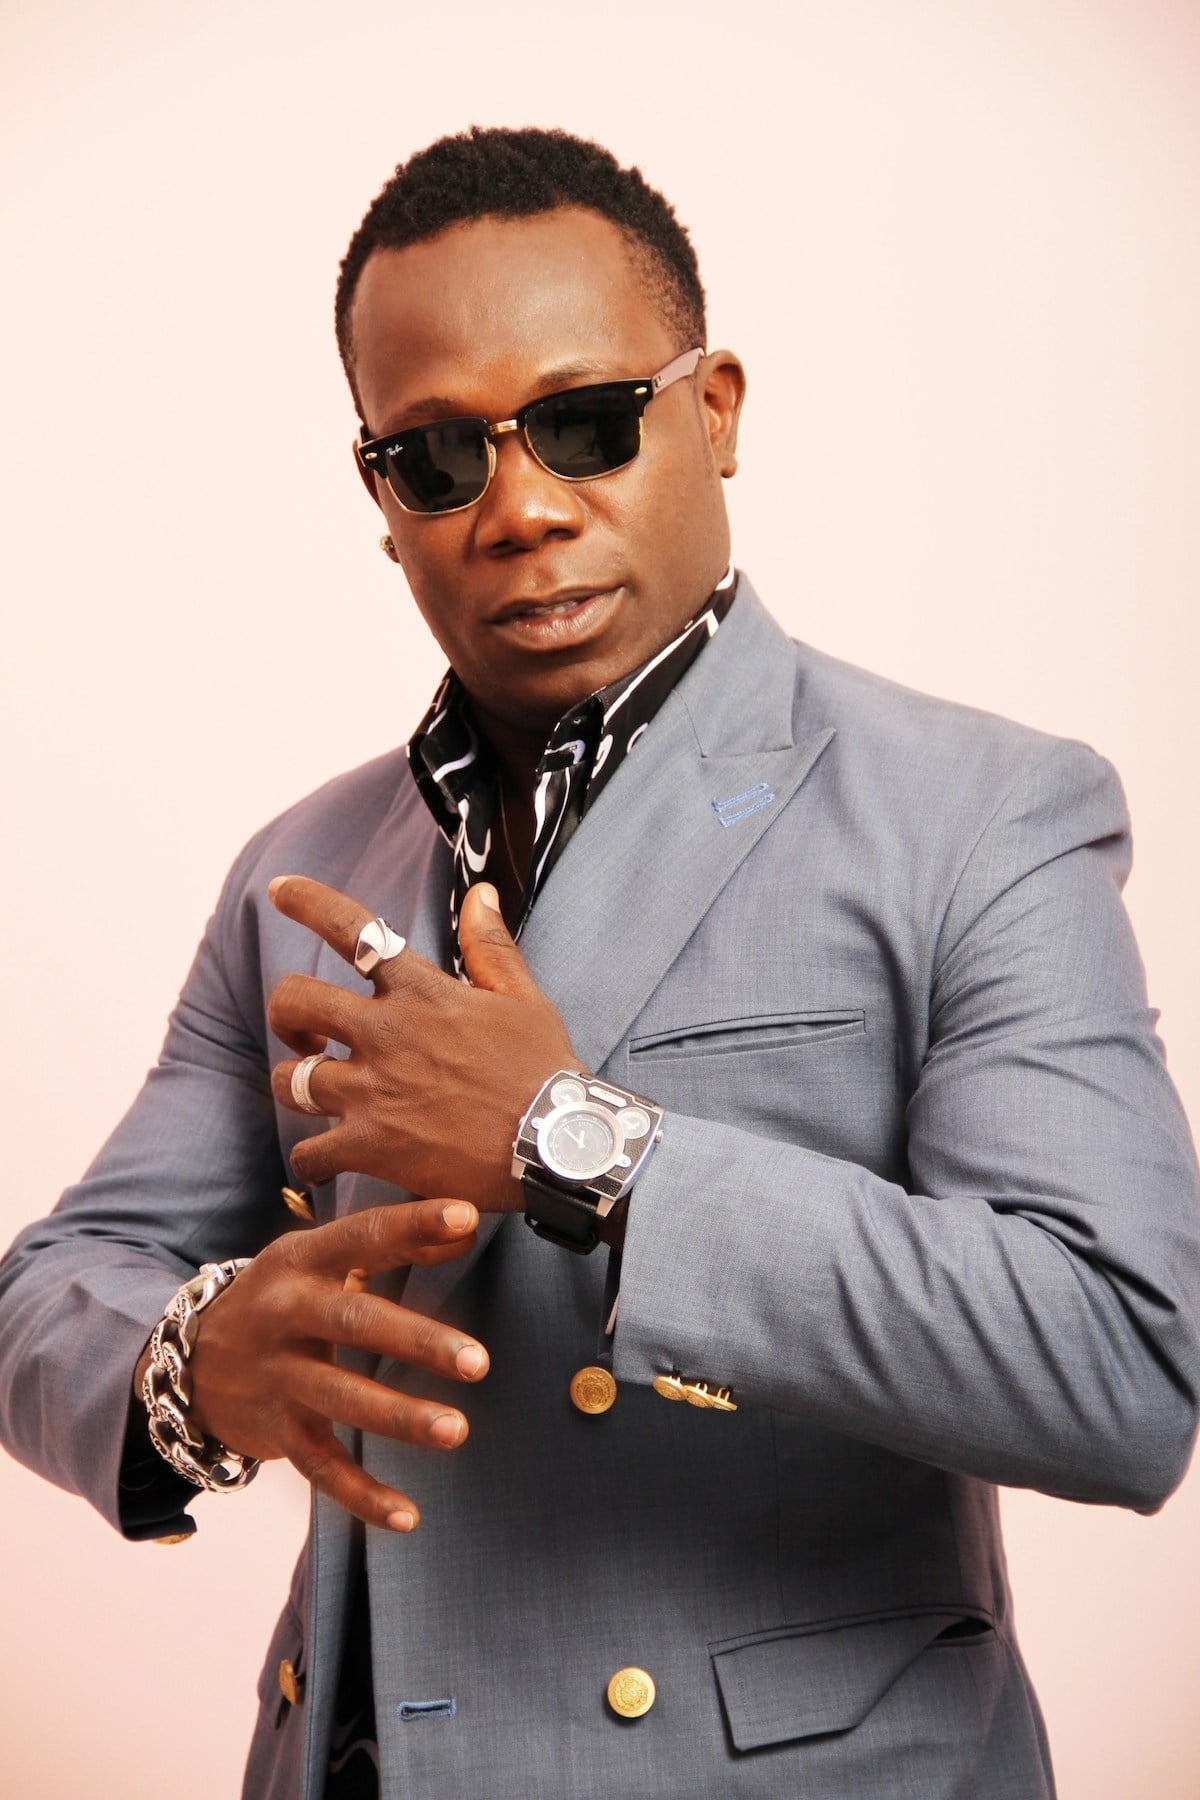 Duncan Mighty songs, duncan mighty new songs, duncan mighty old songs